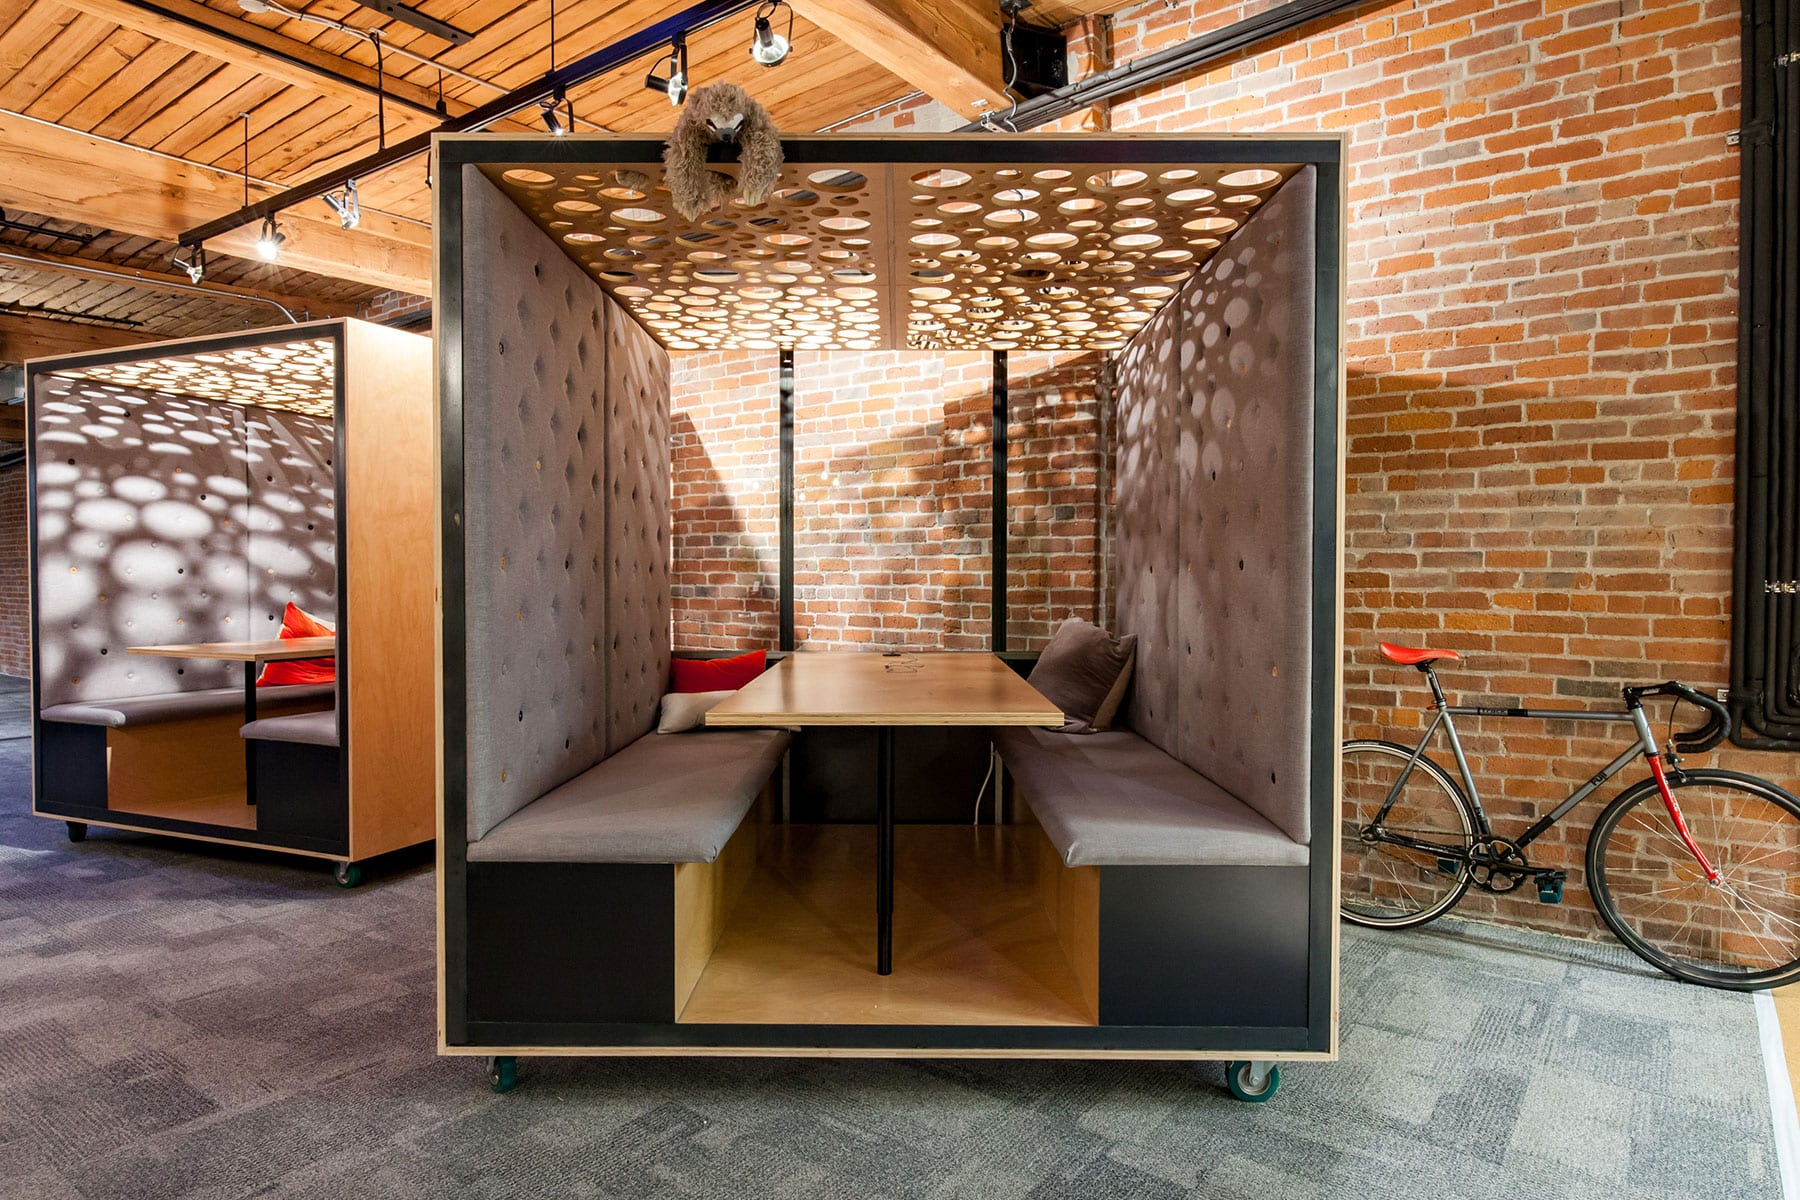 Mobile meeting room in modern office for break out groups, play or privacy work